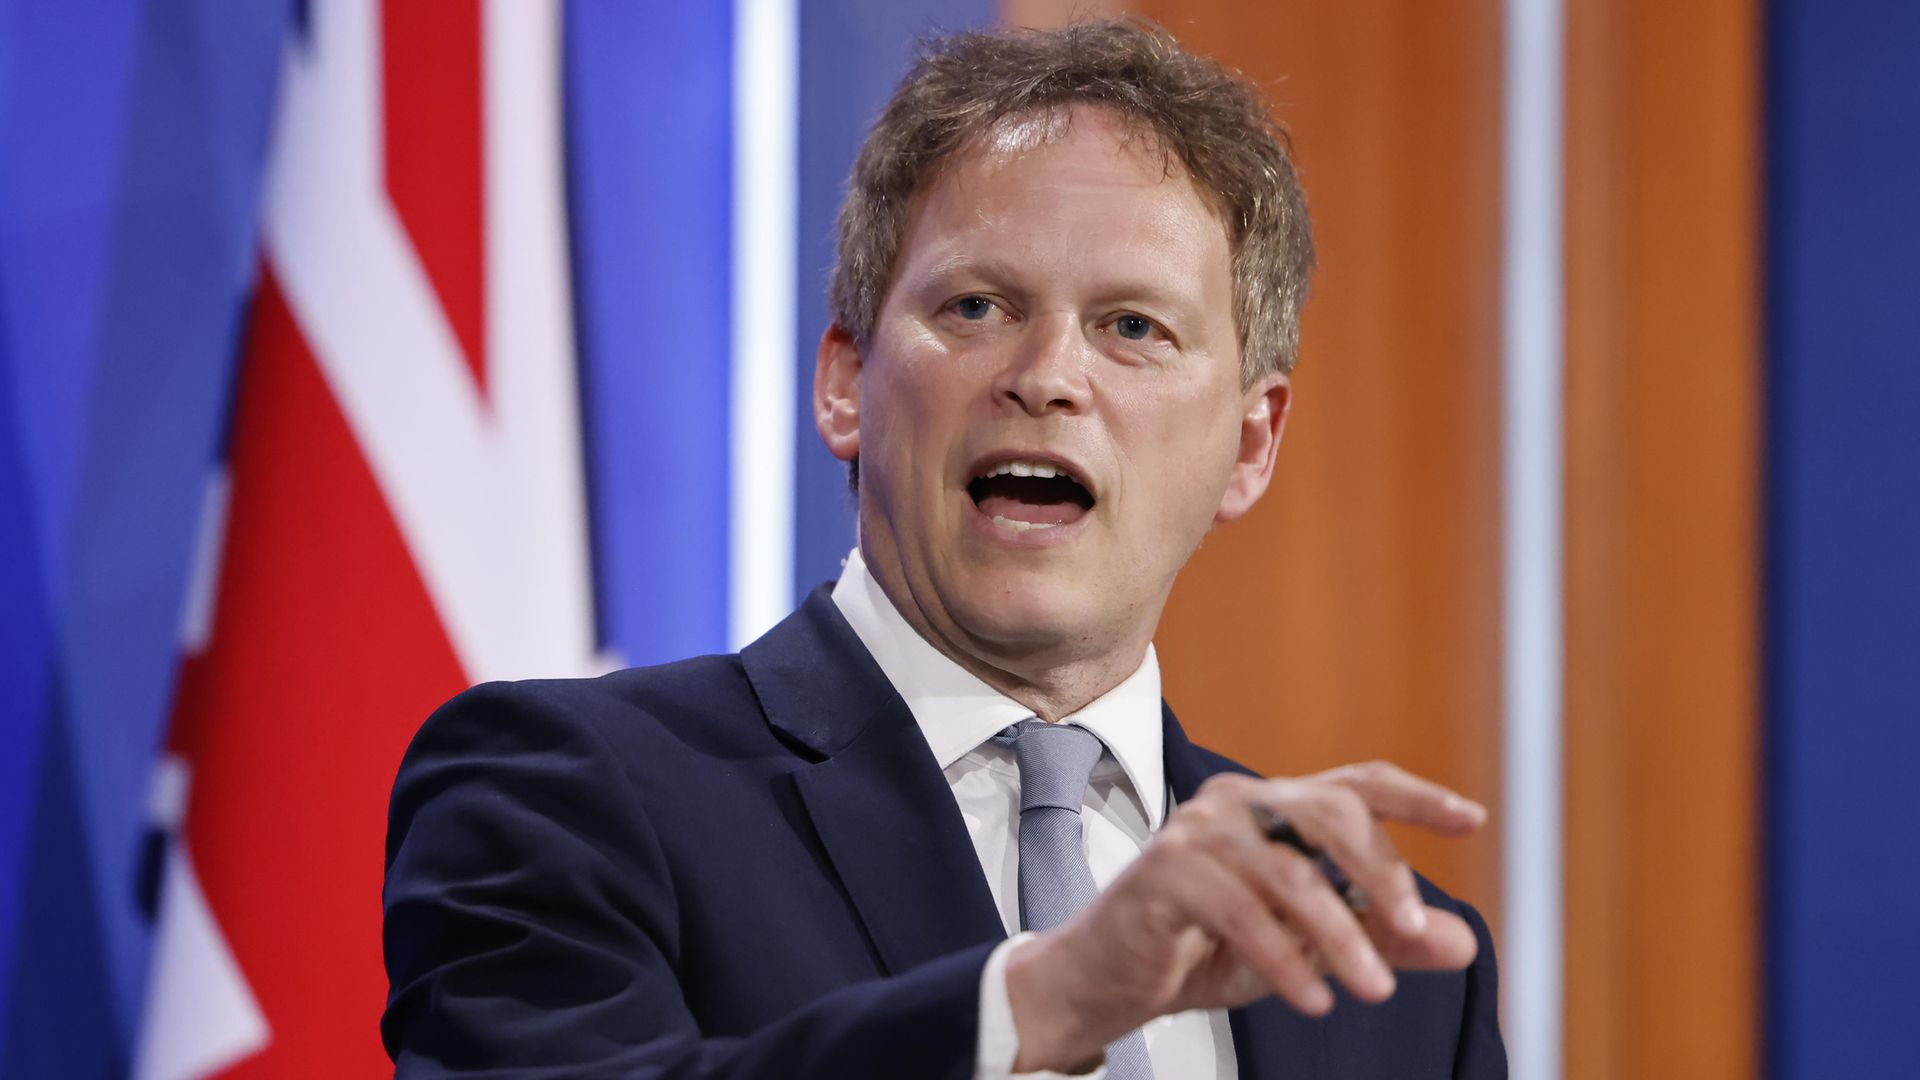 Transport secretary Grant Shapps during a media briefing in Downing Street, London - Credit: PA